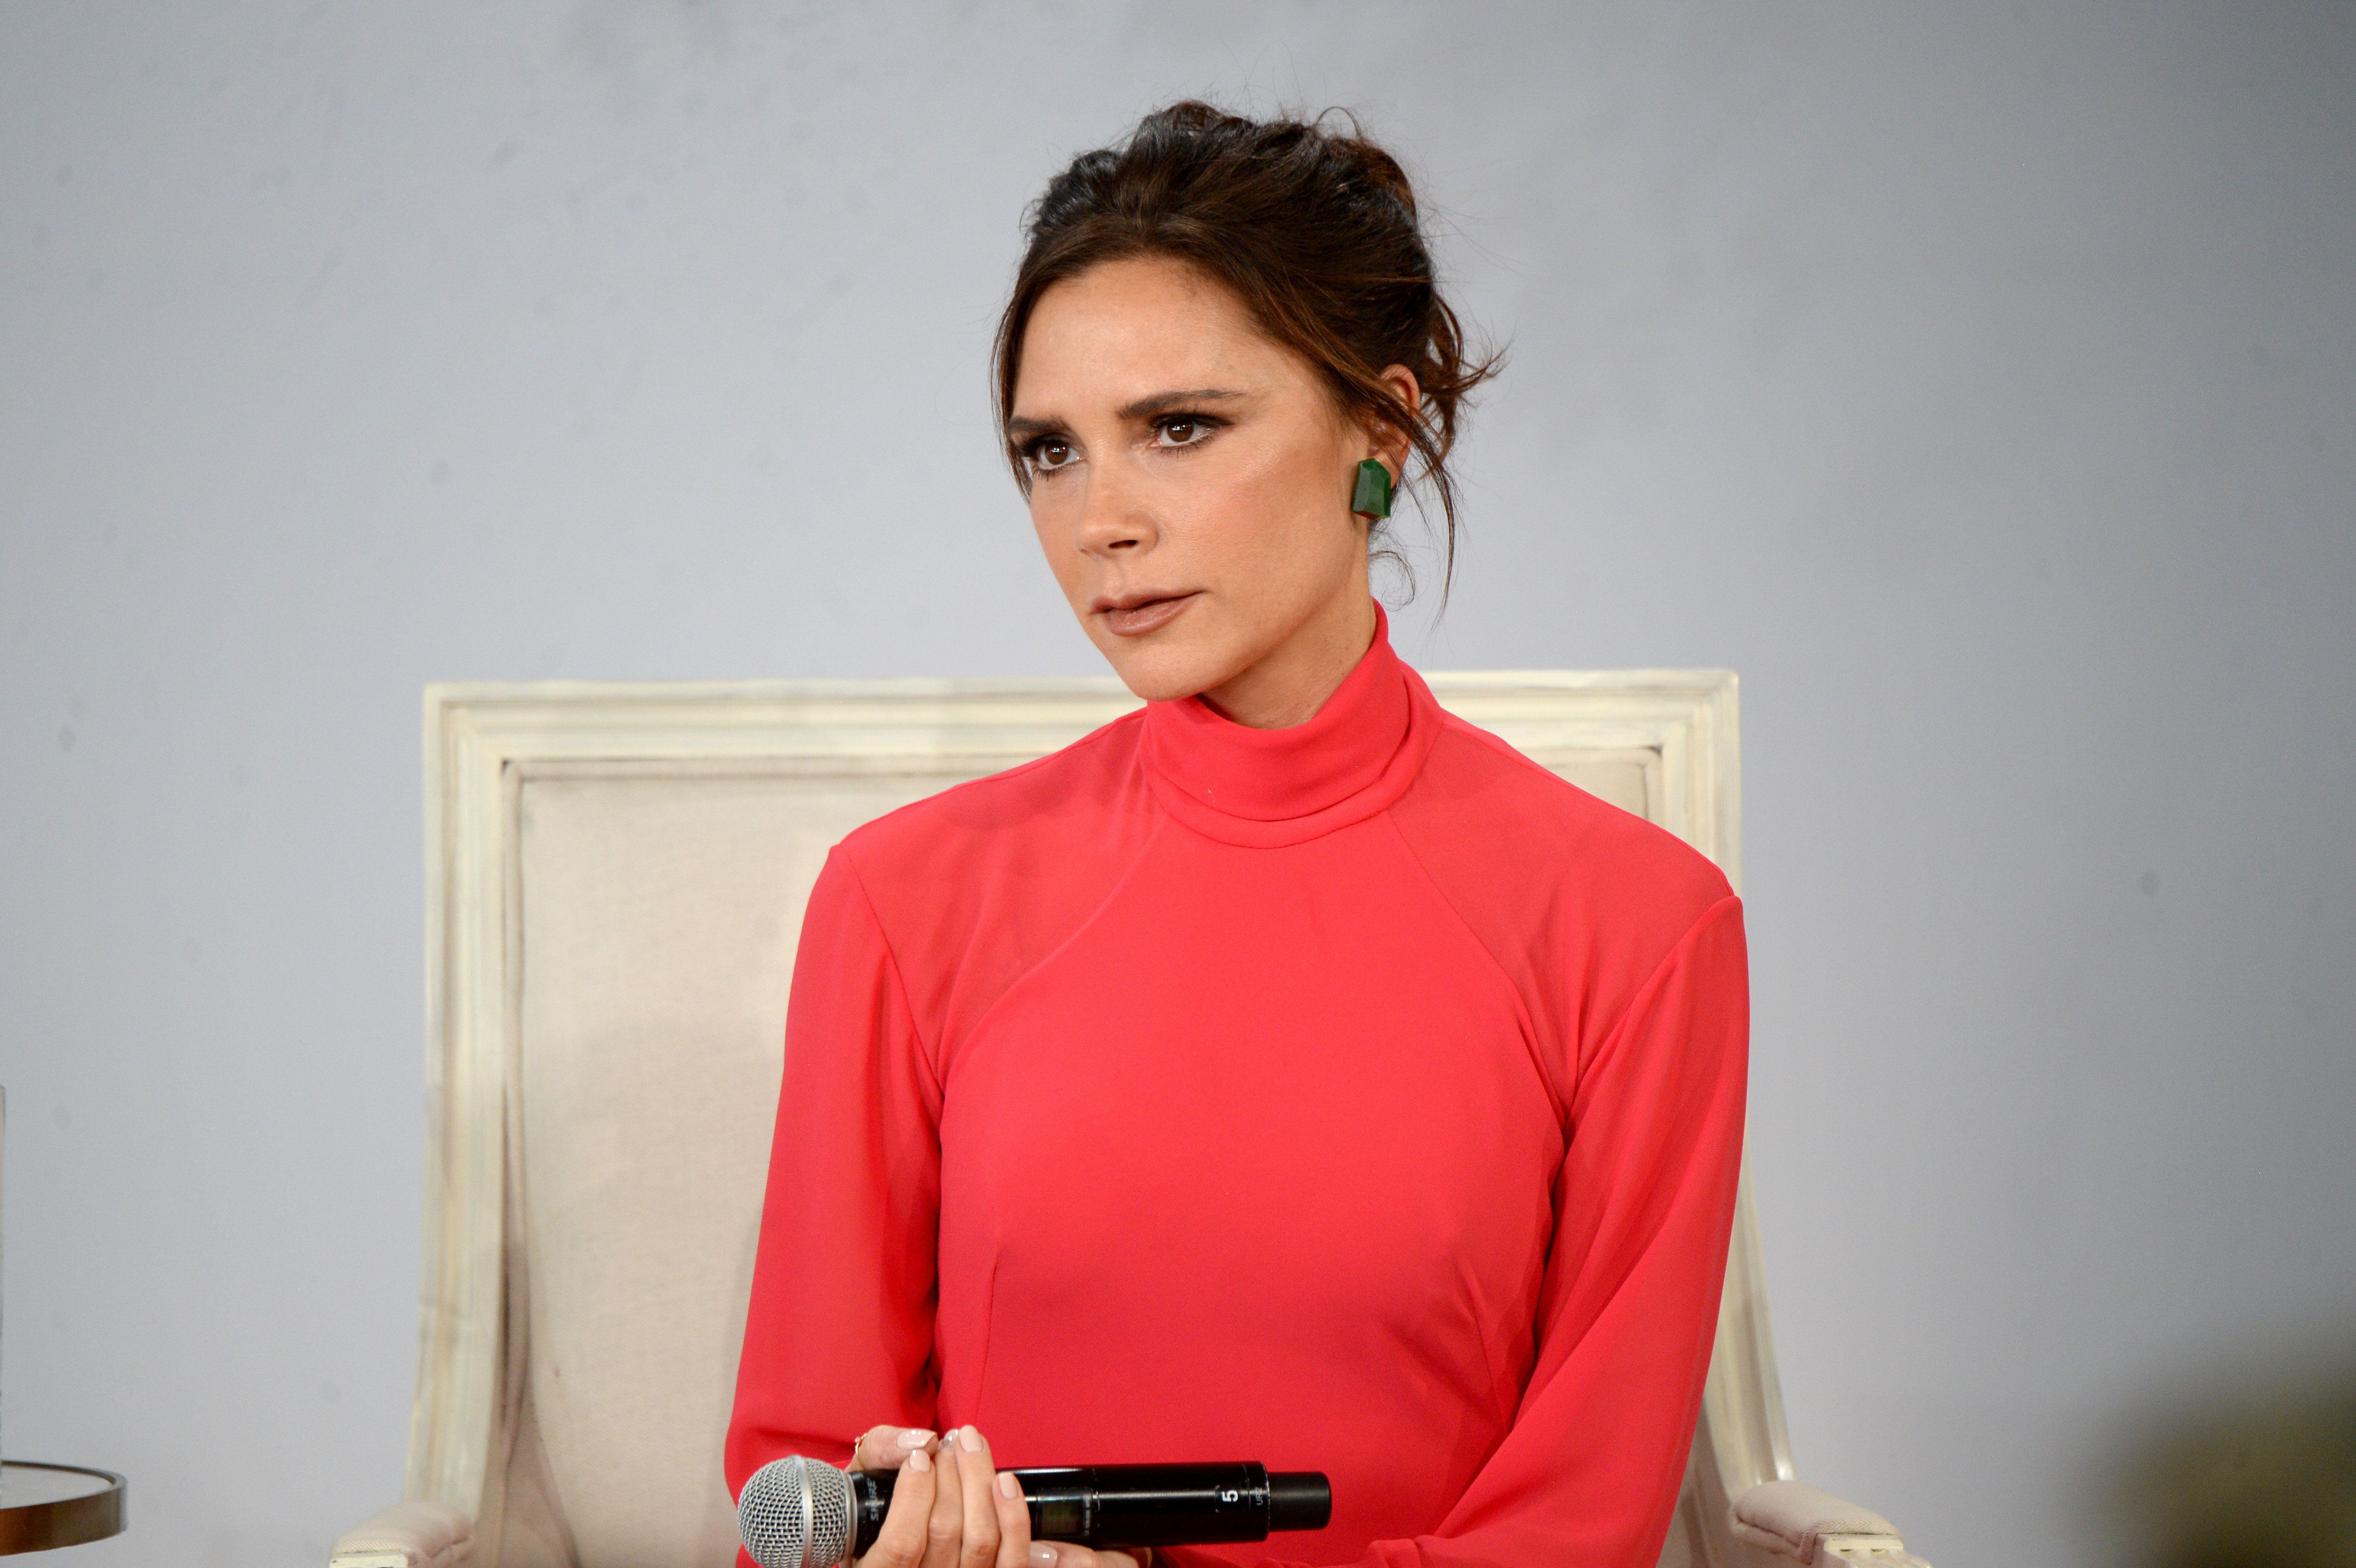 Victoria Beckham To Celebrate Her Fashion Brand's 10 Year Anniversary At London Fashion